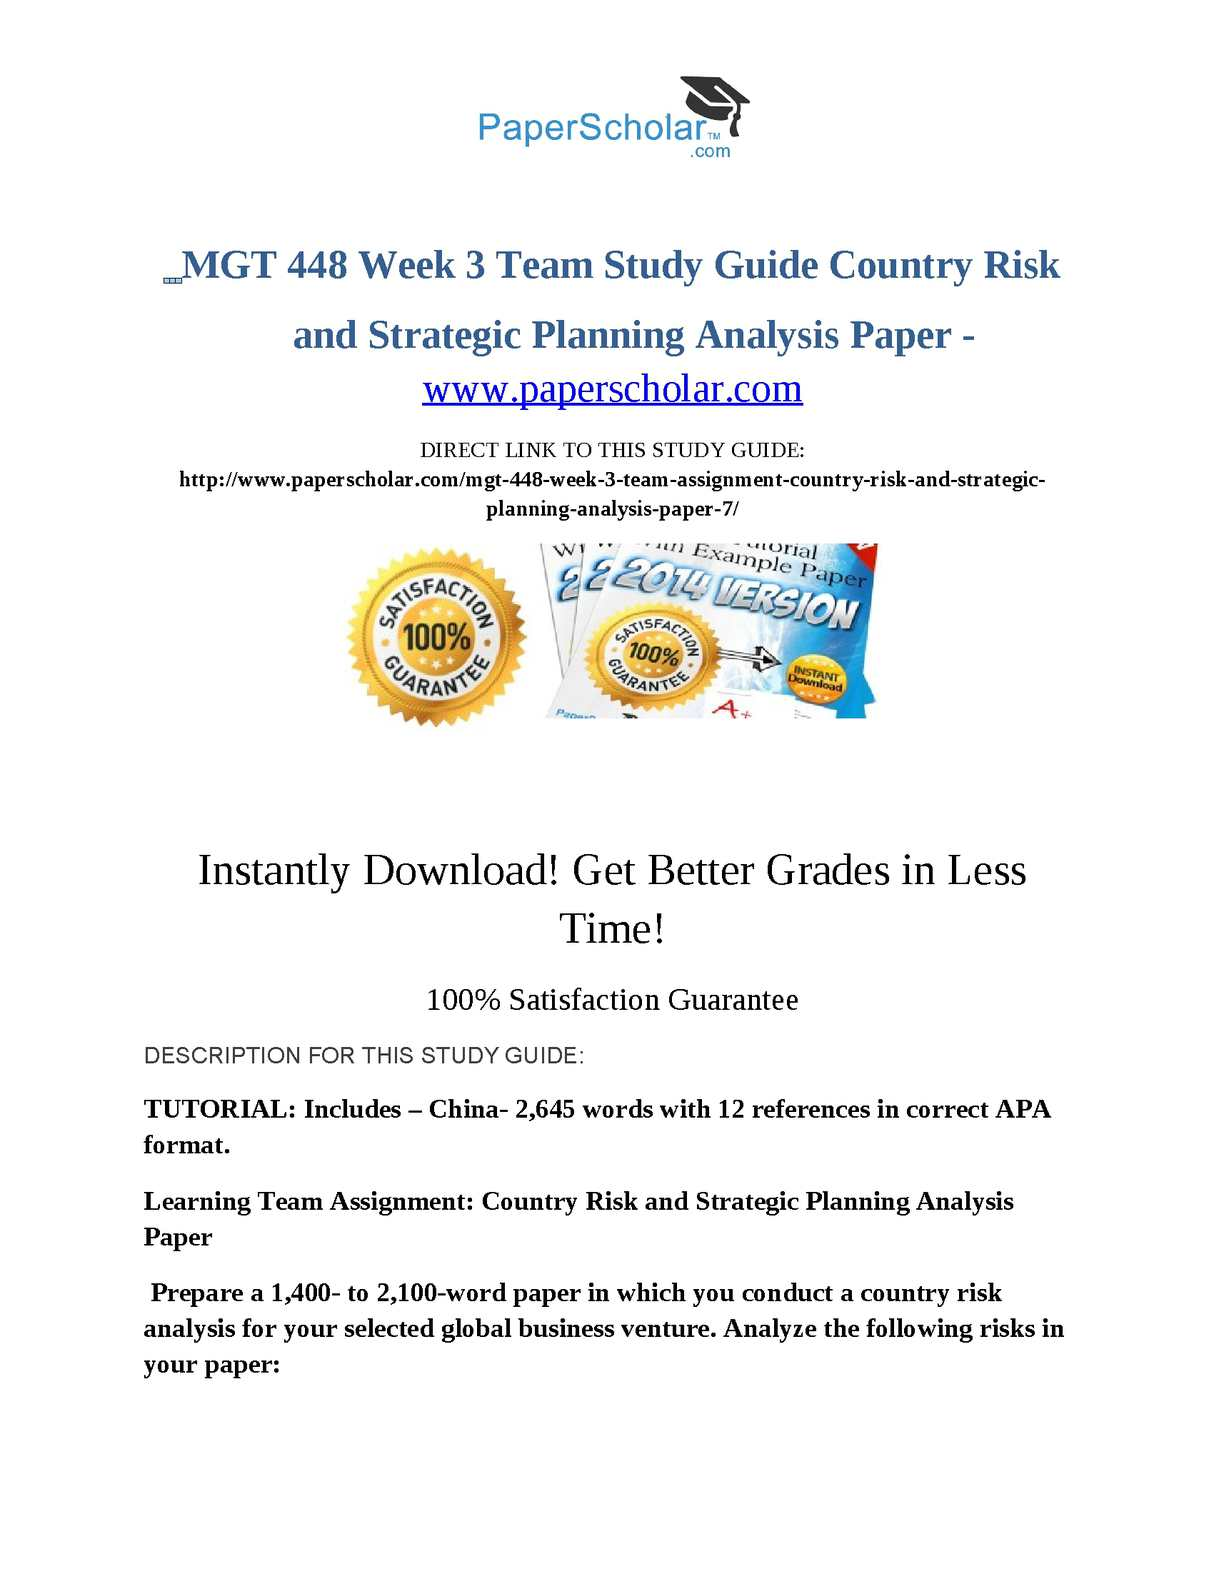 mgt 420 week 5 individual quality management organizations Mgt 420 entire course (uop course) for more course tutorials visit wwwtutorialrankcom tutorial purchased: 7 times, rating: a+ mgt 420 week 1 individual assignment role of stakeholders paper (uop course.